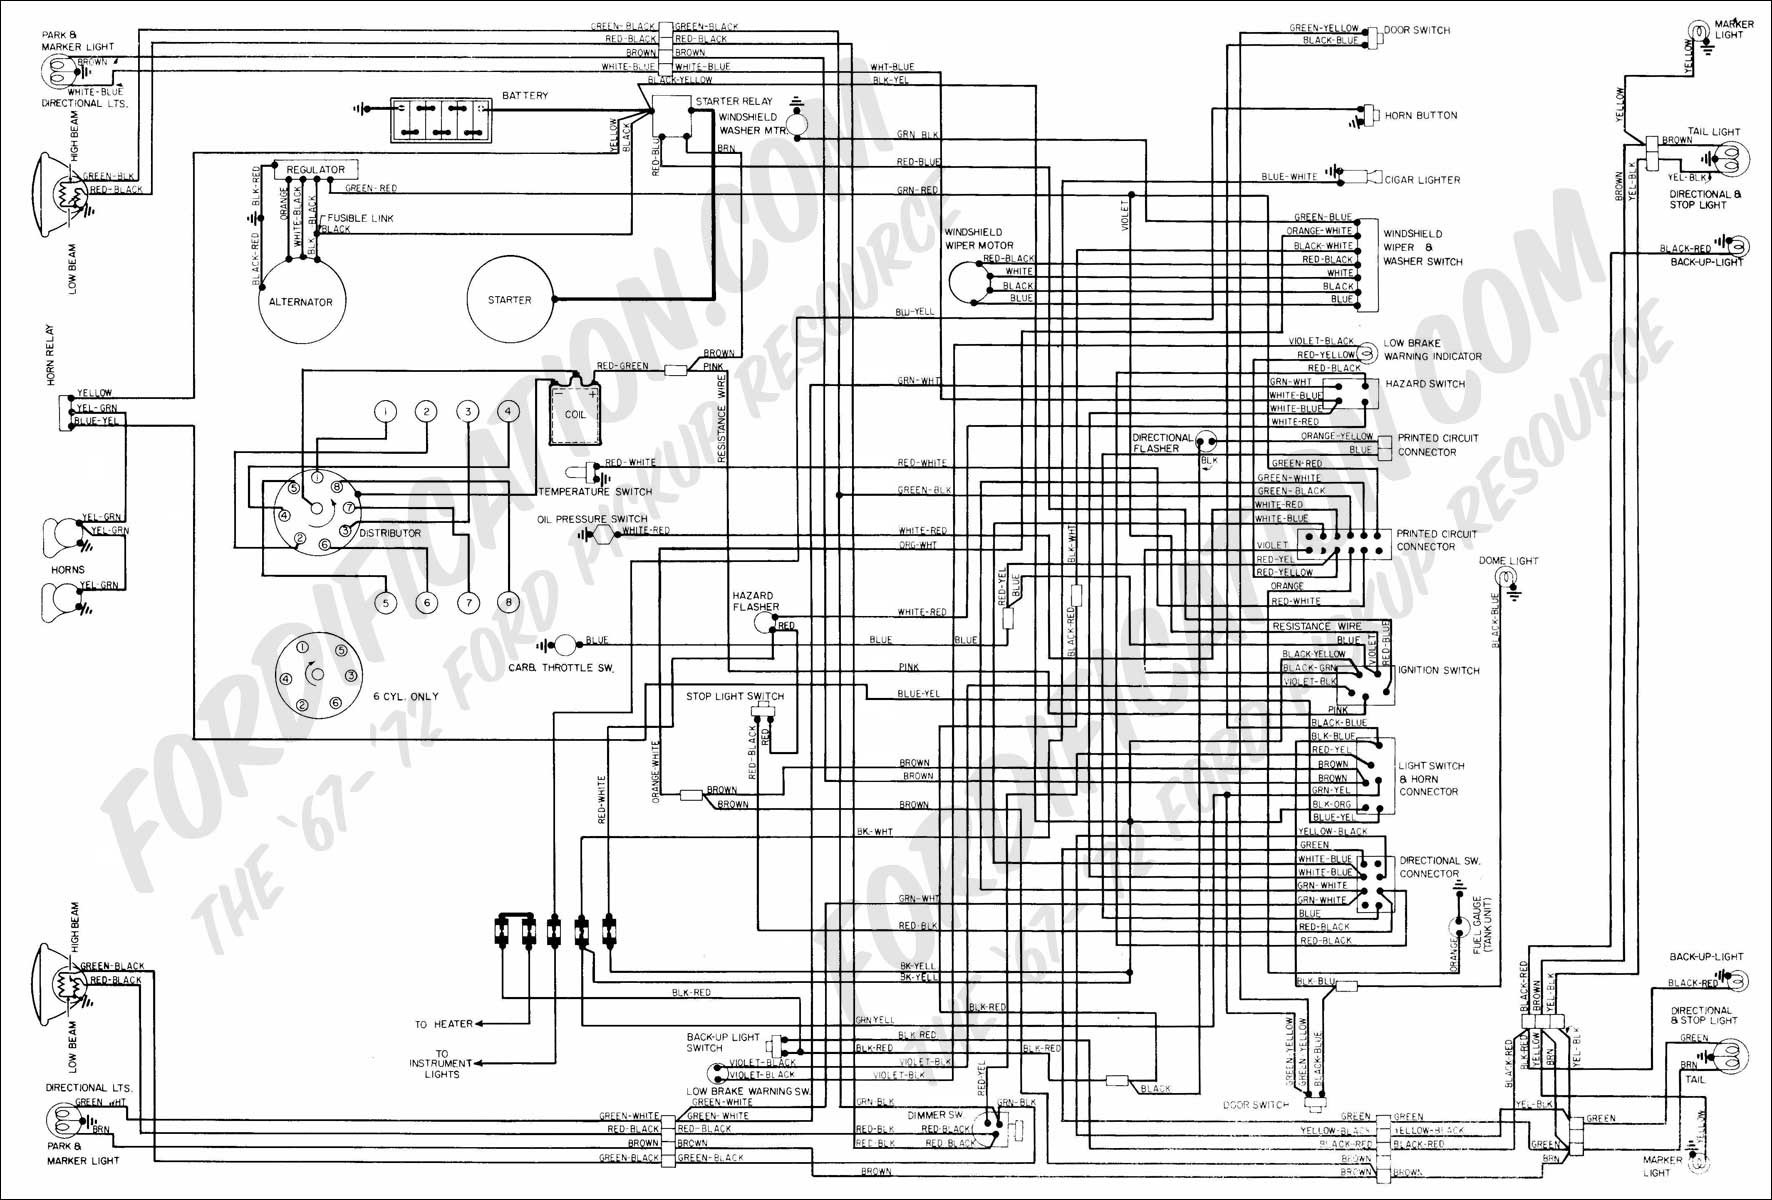 Ford 5l8t-18c815-da Wiring Diagram